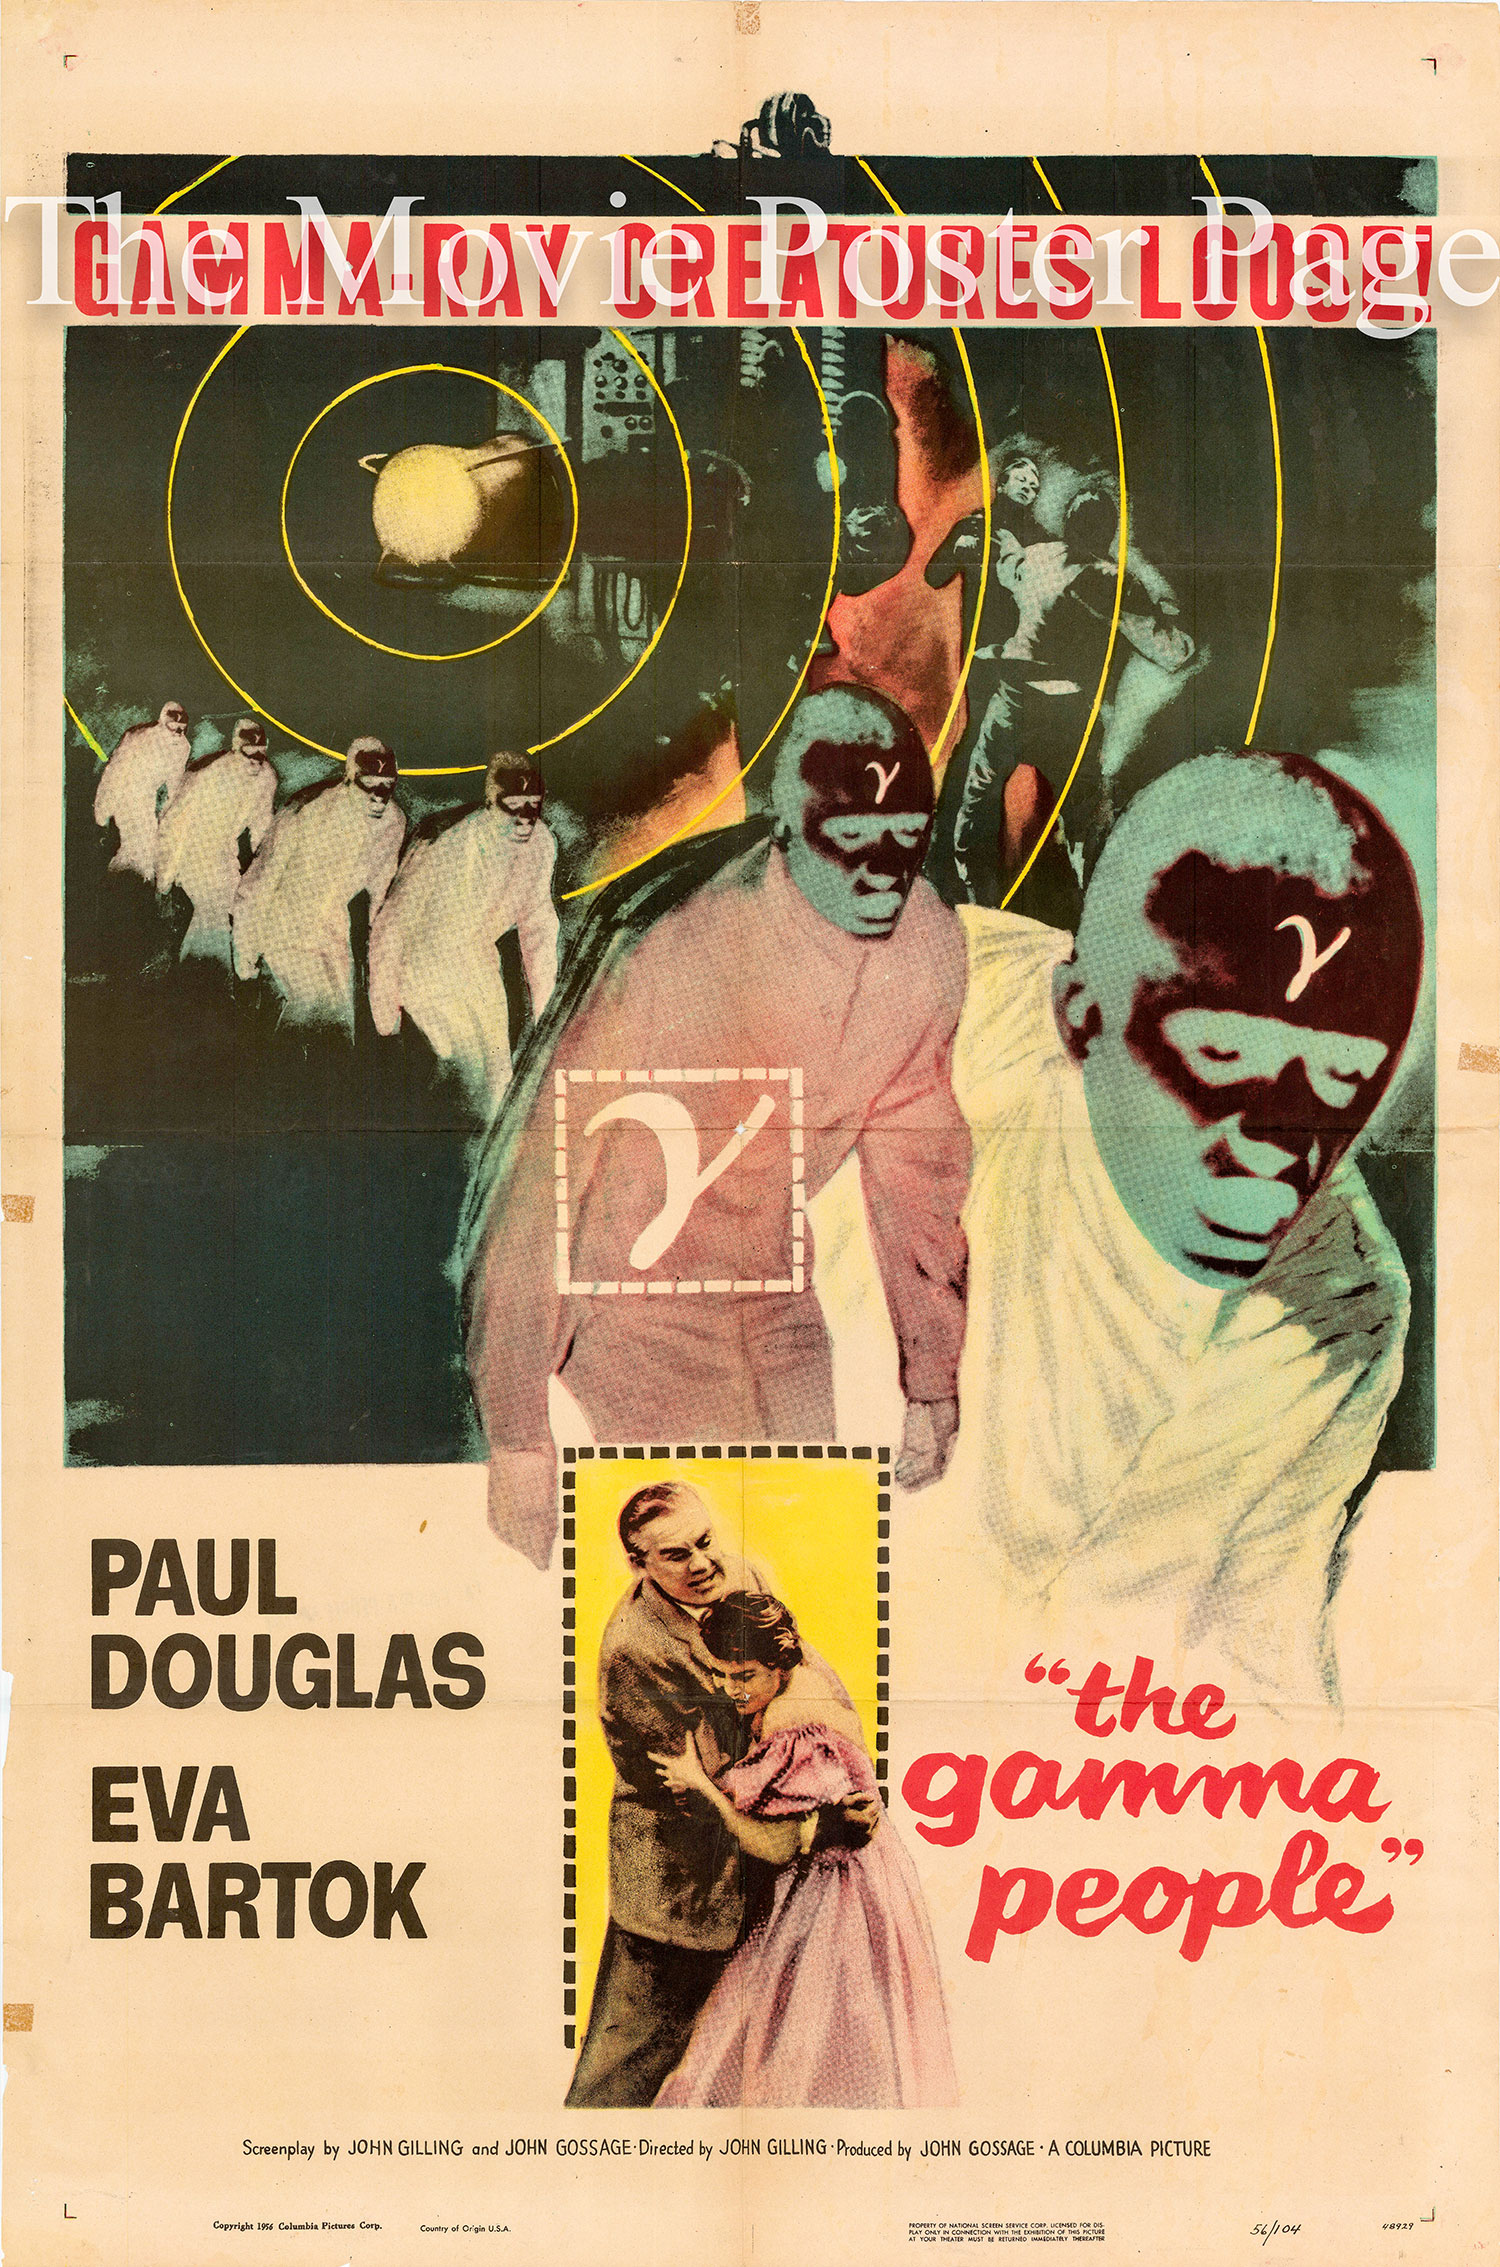 Pictured is a US one-sheet promotional poster for the 1956 John Gilling film The Gamma People starring Paul Douglas.